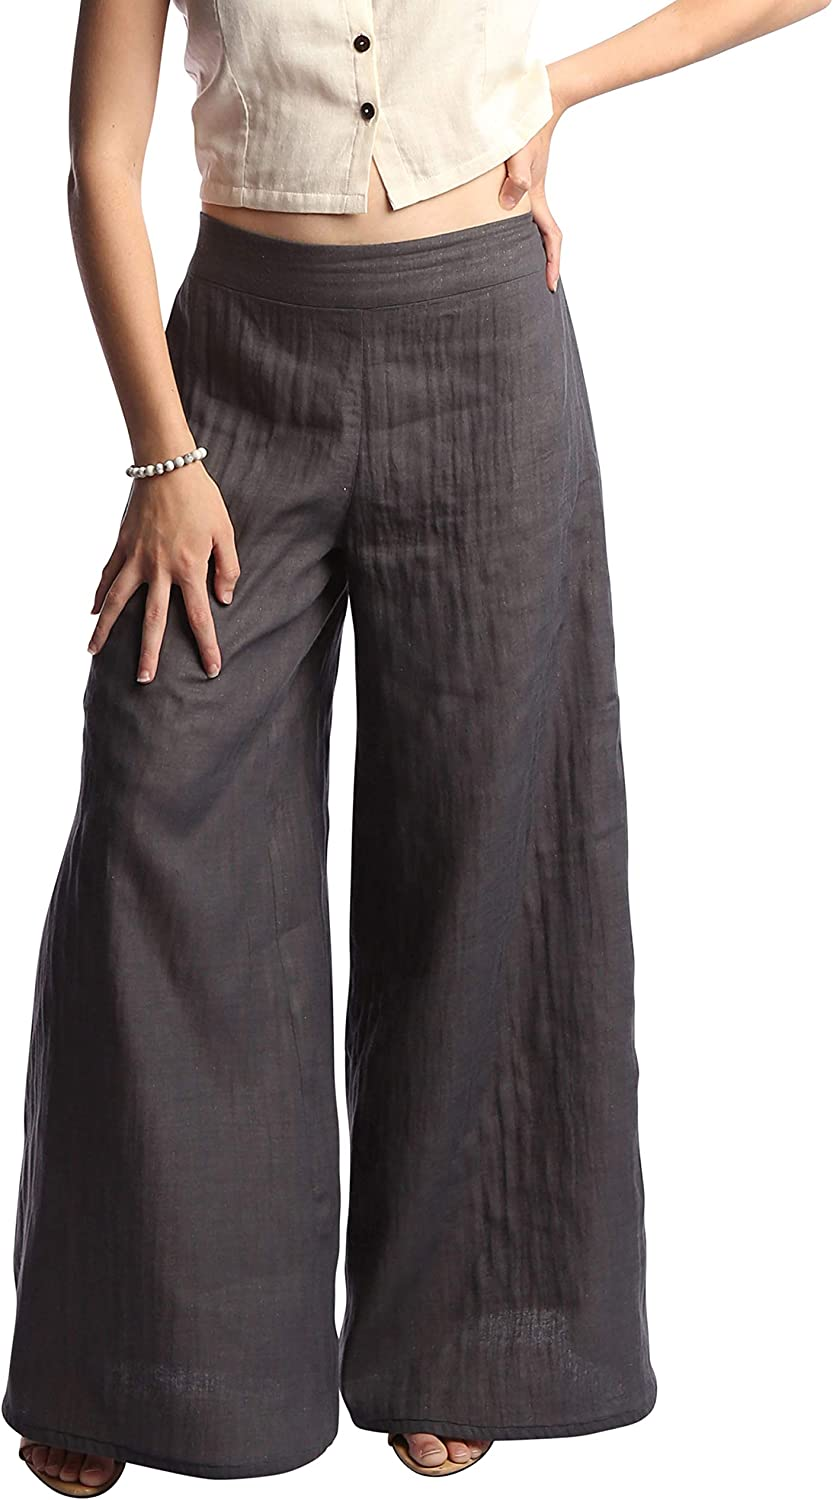 Tropic Bliss Women's Fall Palazzo Pants, Organic Cotton, Office Casual Trousers for Women